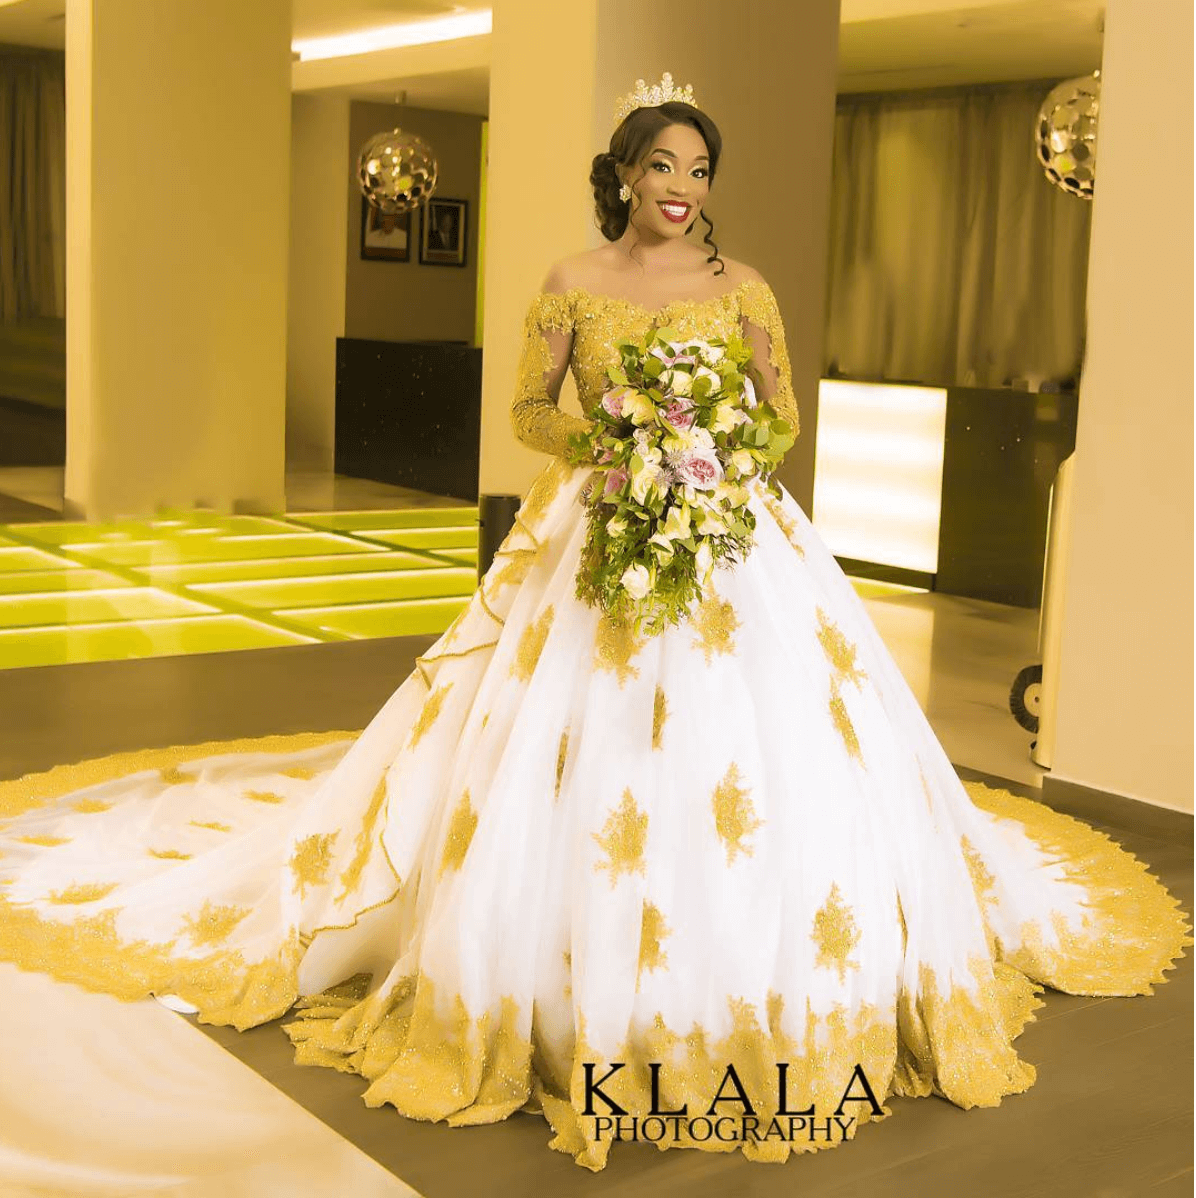 Dress Gowns For Weddings: This Gold-Detailed April By Kunbi Wedding Dress Is What